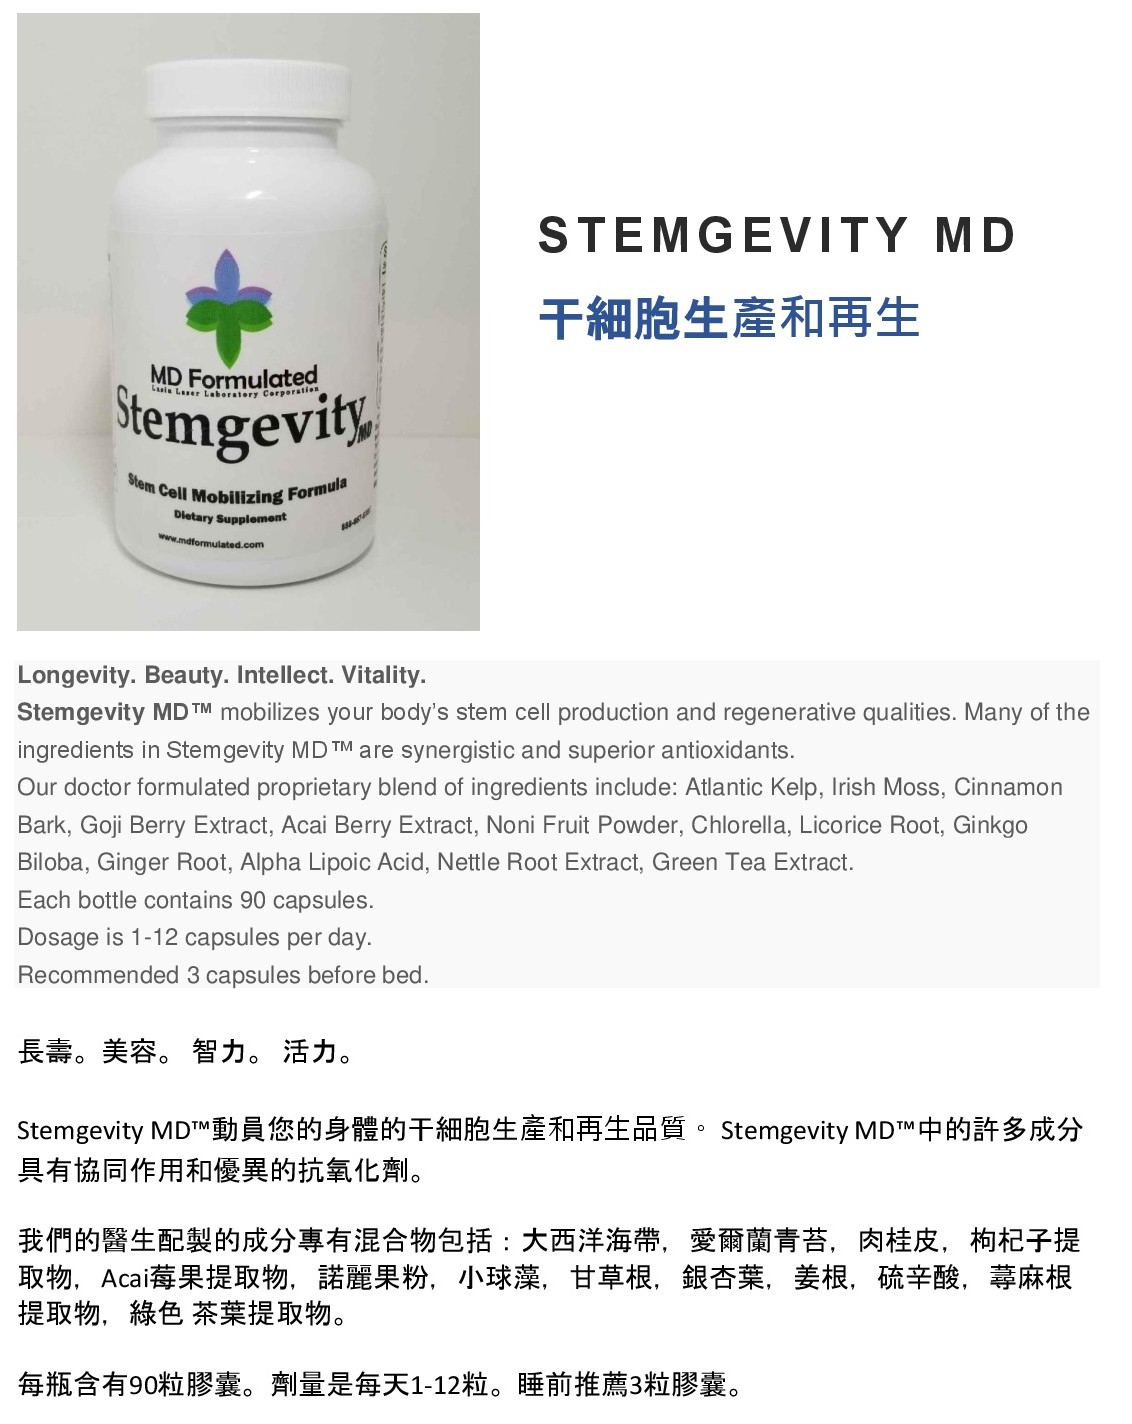 Stemgevity MD